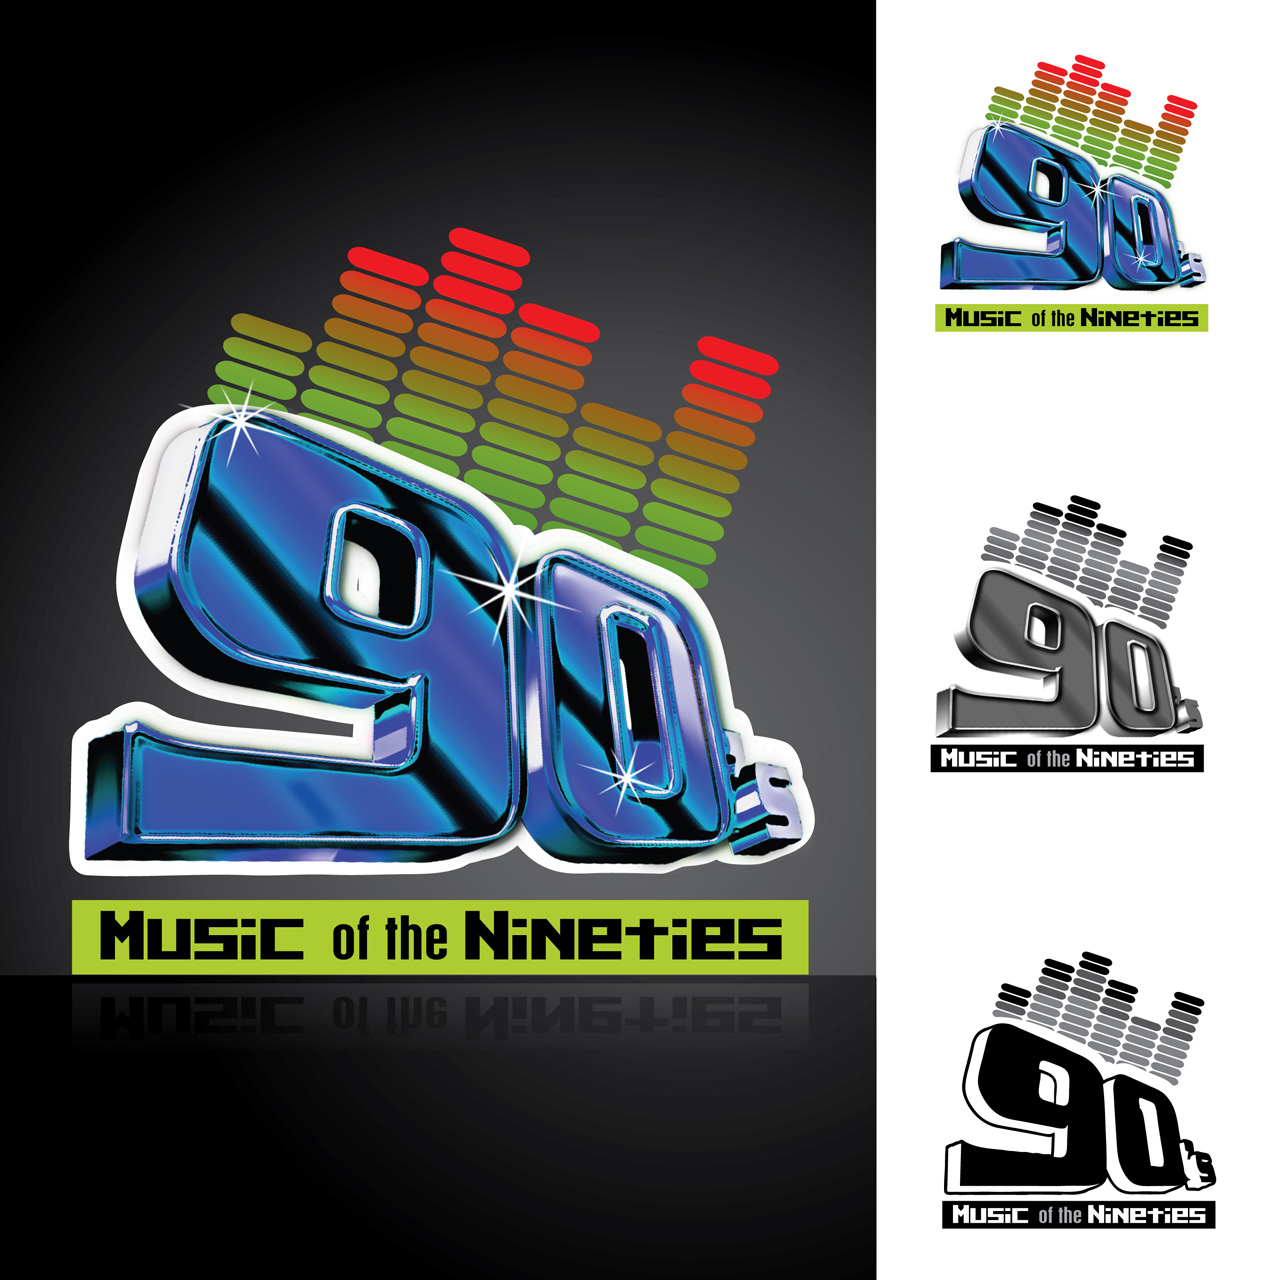 Logo Design by Alexander Ioannidis - Entry No. 8 in the Logo Design Contest Music of the Nineties Logo.